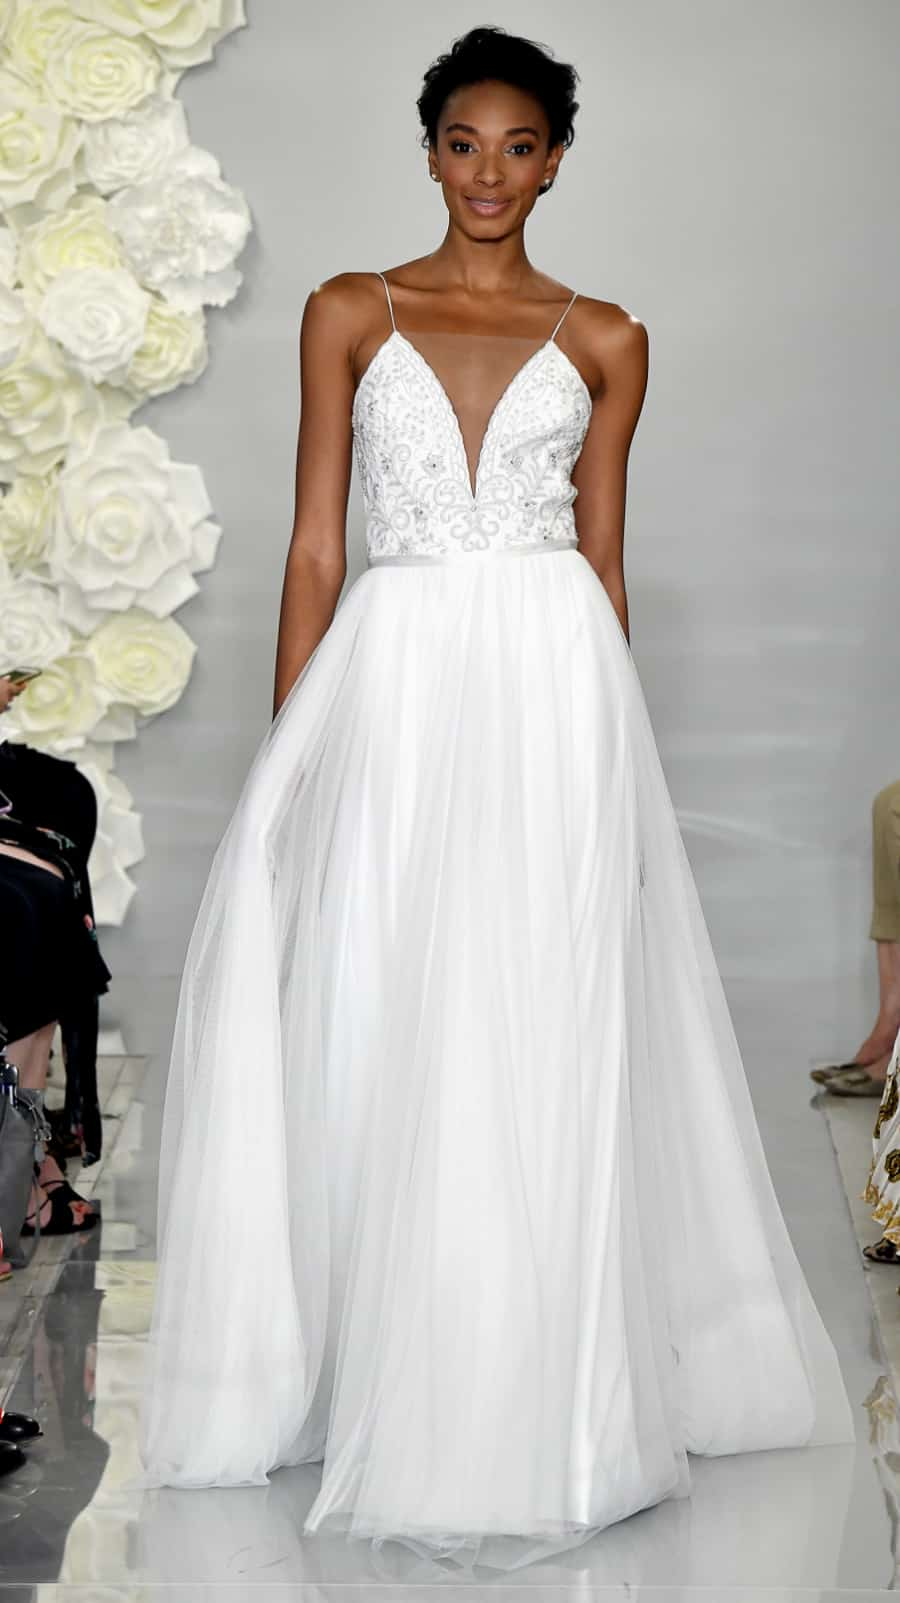 Theia Wedding Dresses Fall 2019 Dress For The Wedding,Maggie Sottero Wedding Dress Prices